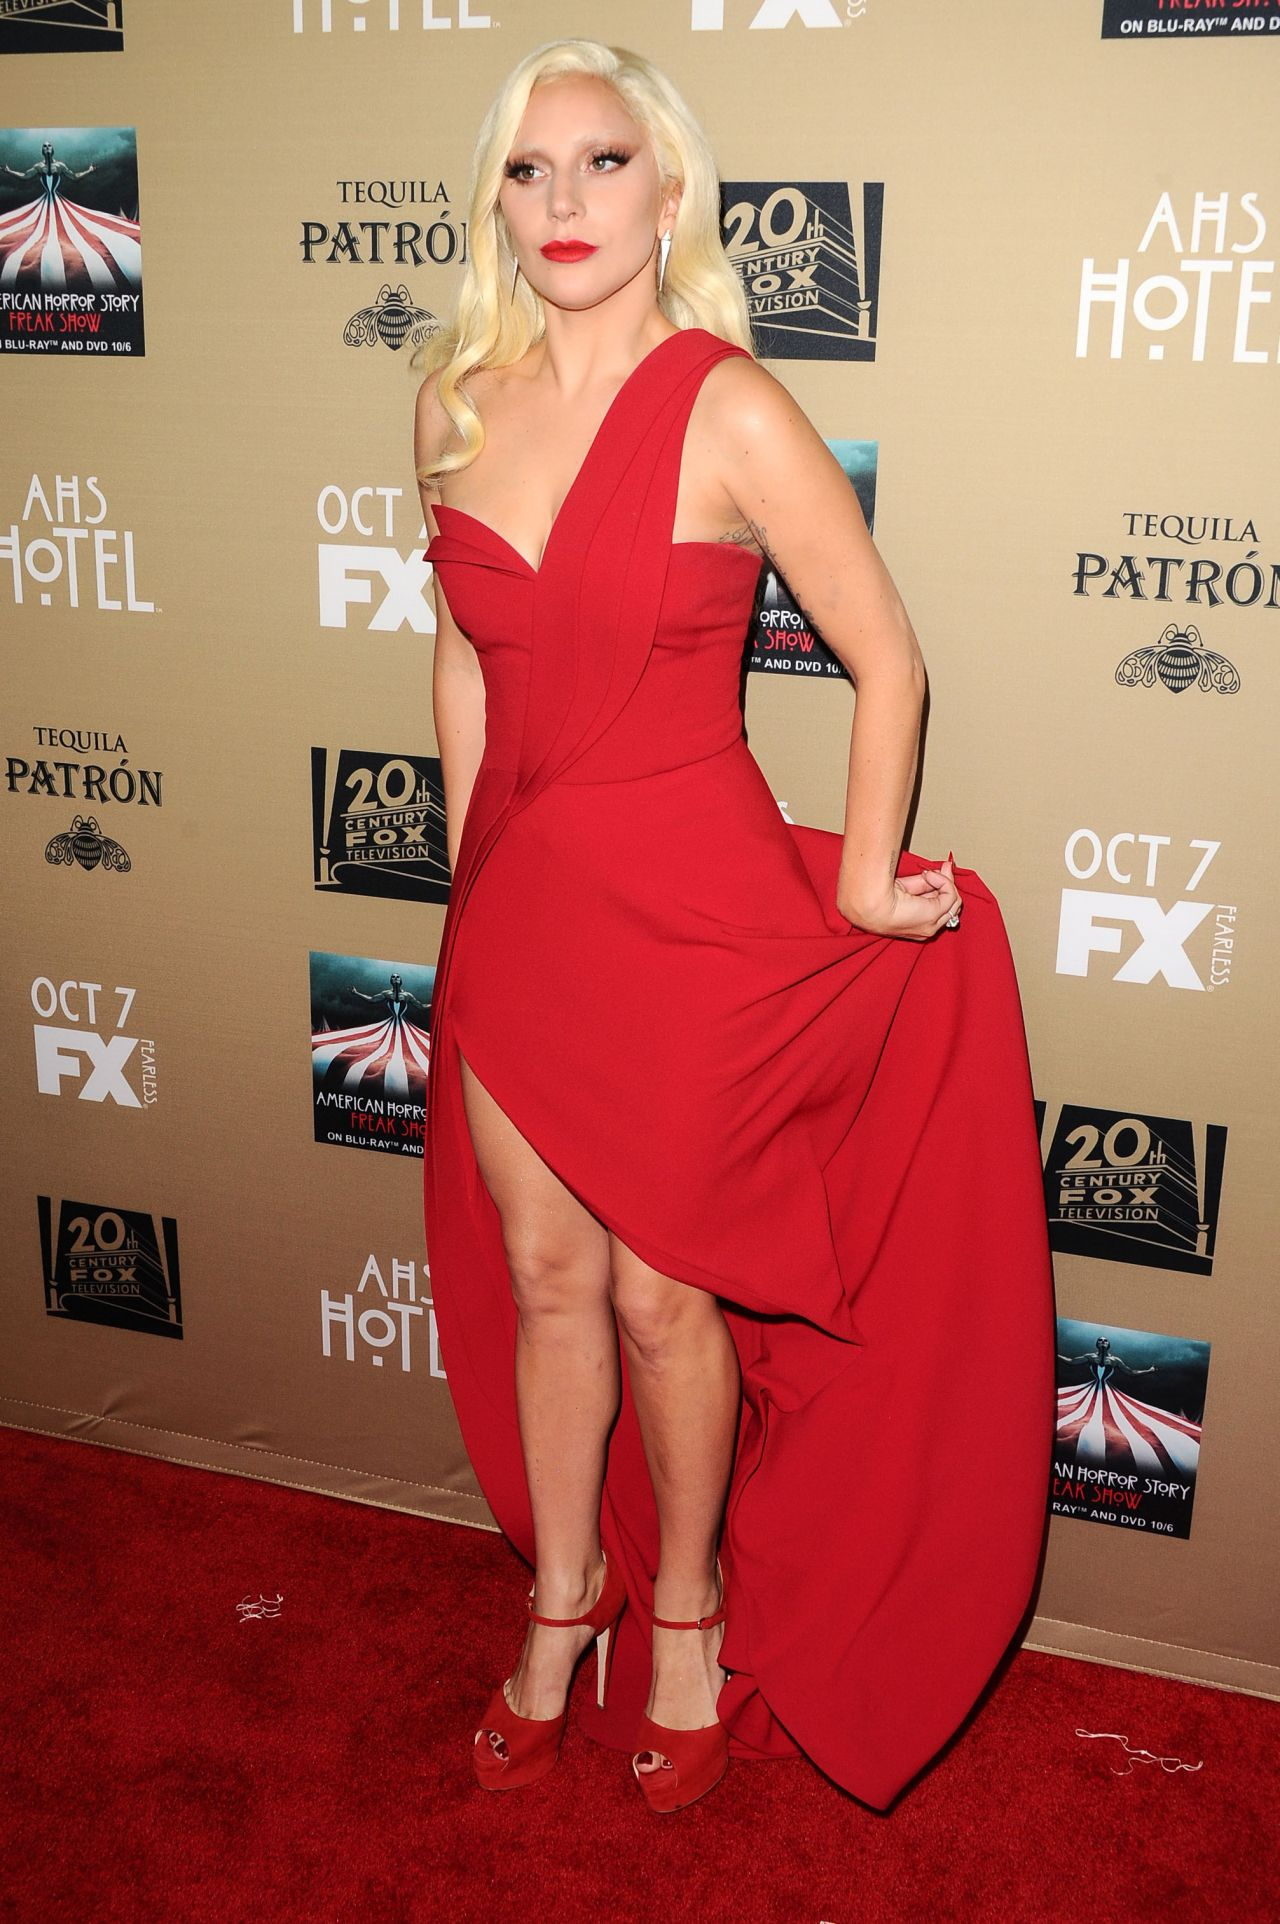 lady-gaga-fx-s-american-horror-story-hotel-screening-in-los-angeles_5